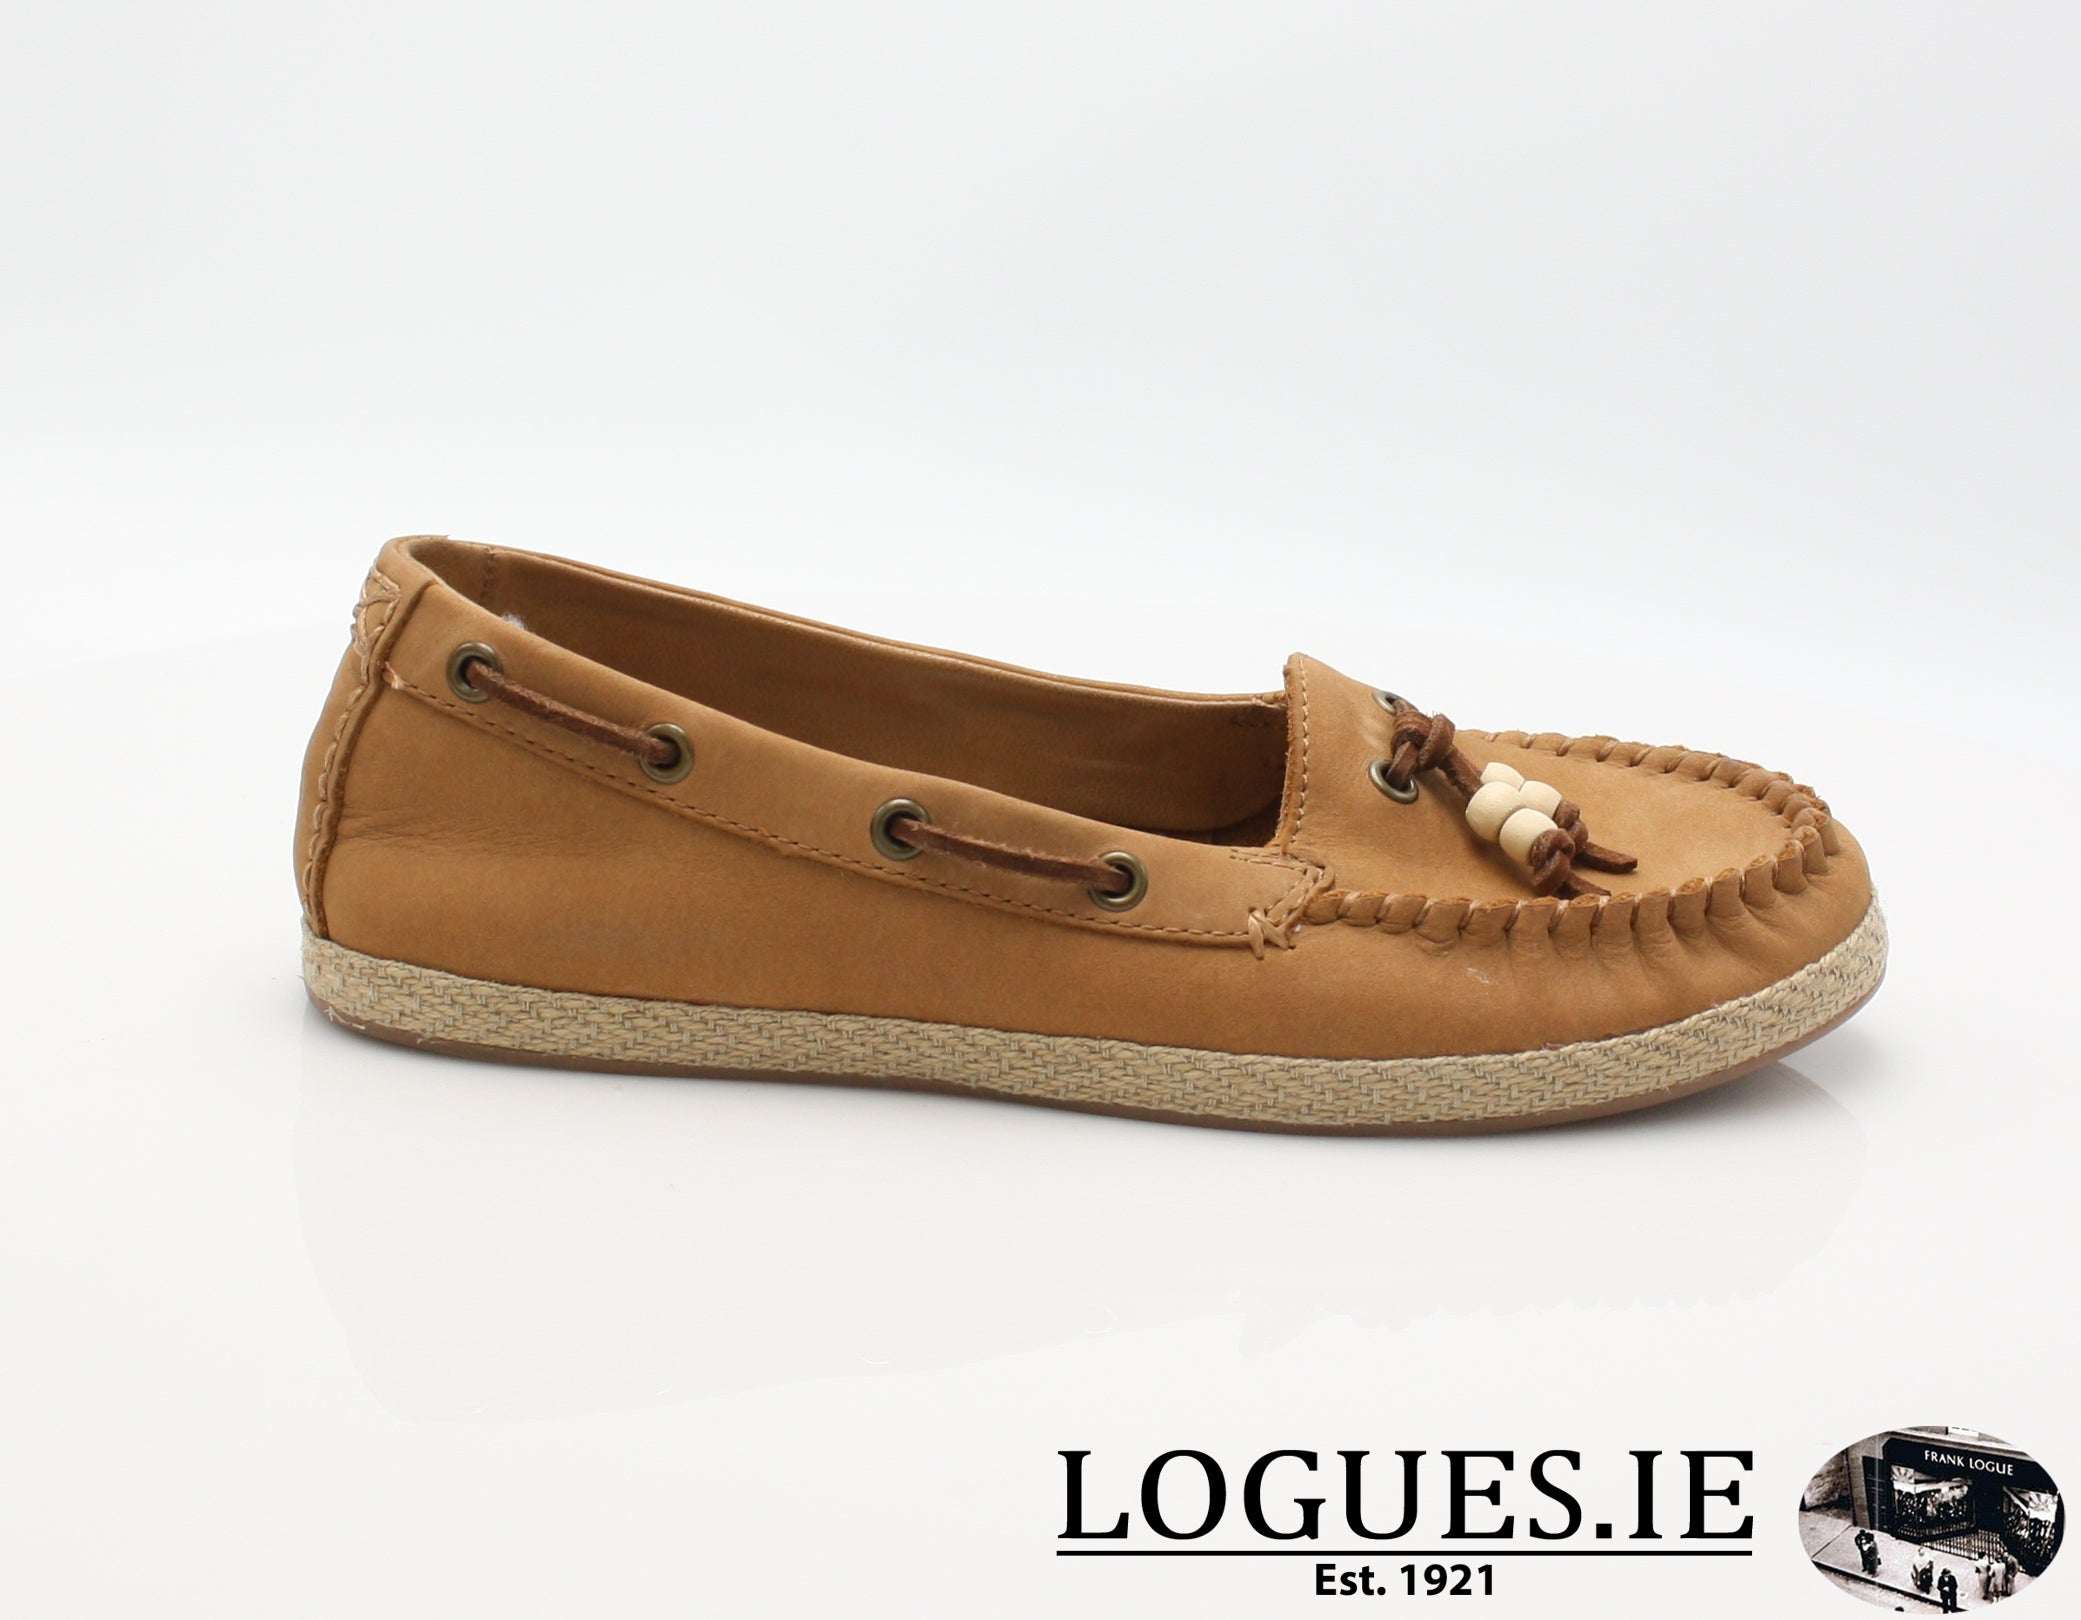 3a0363636bd UGGS SUZETTE   Shop today for Free Irish shipping   Logues Shoes 1921